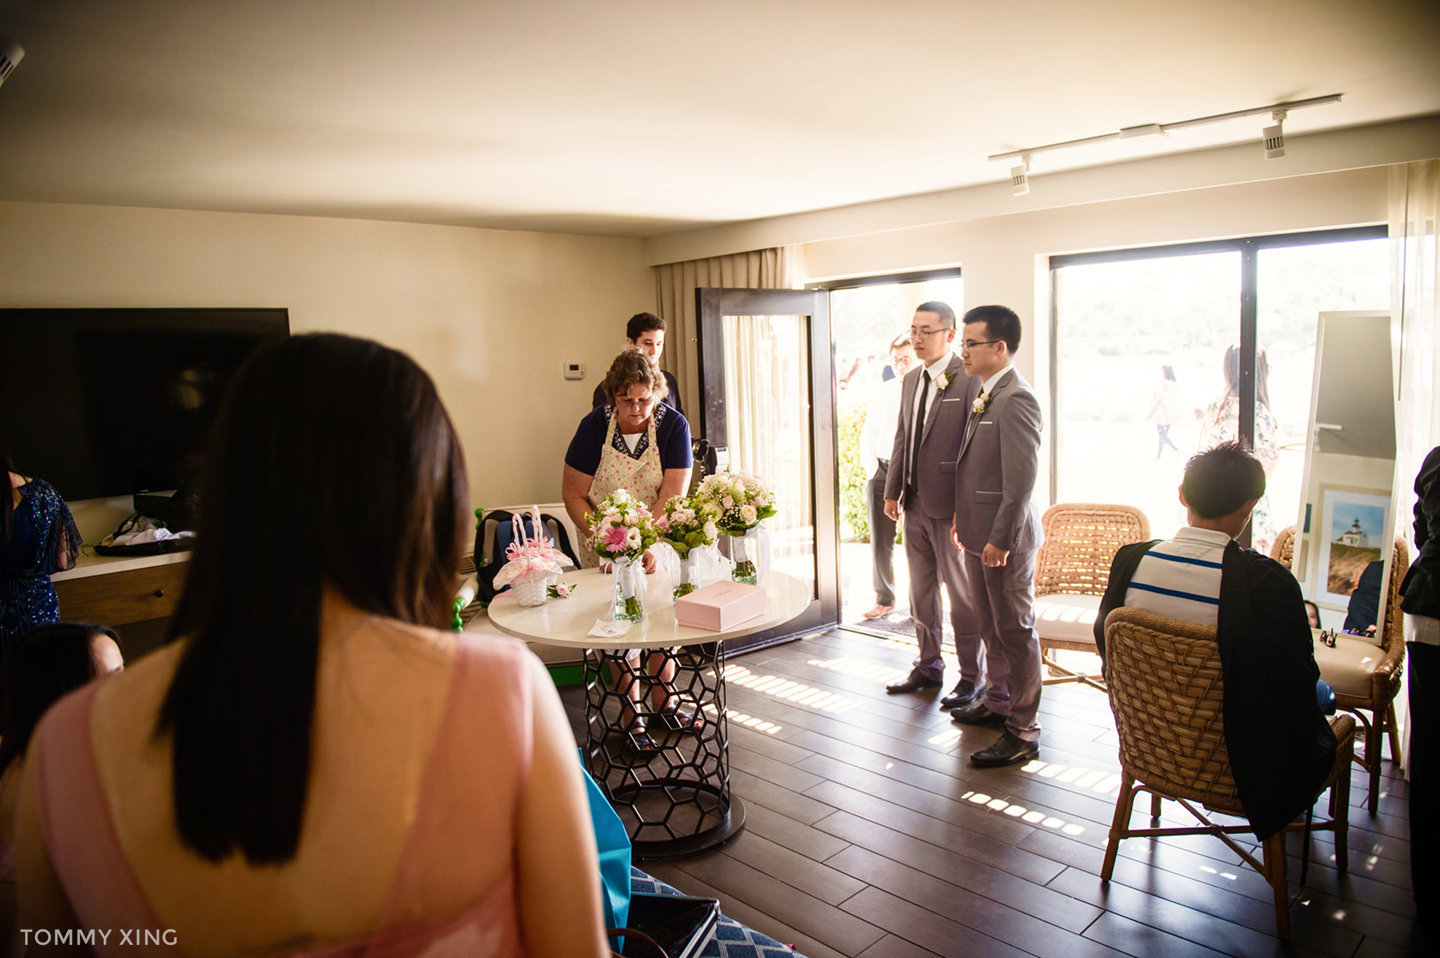 Paradise Point Resort Wedding Xiaolu & Bin San Diego 圣地亚哥婚礼摄影跟拍 Tommy Xing Photography 洛杉矶婚礼婚纱照摄影师 015.jpg